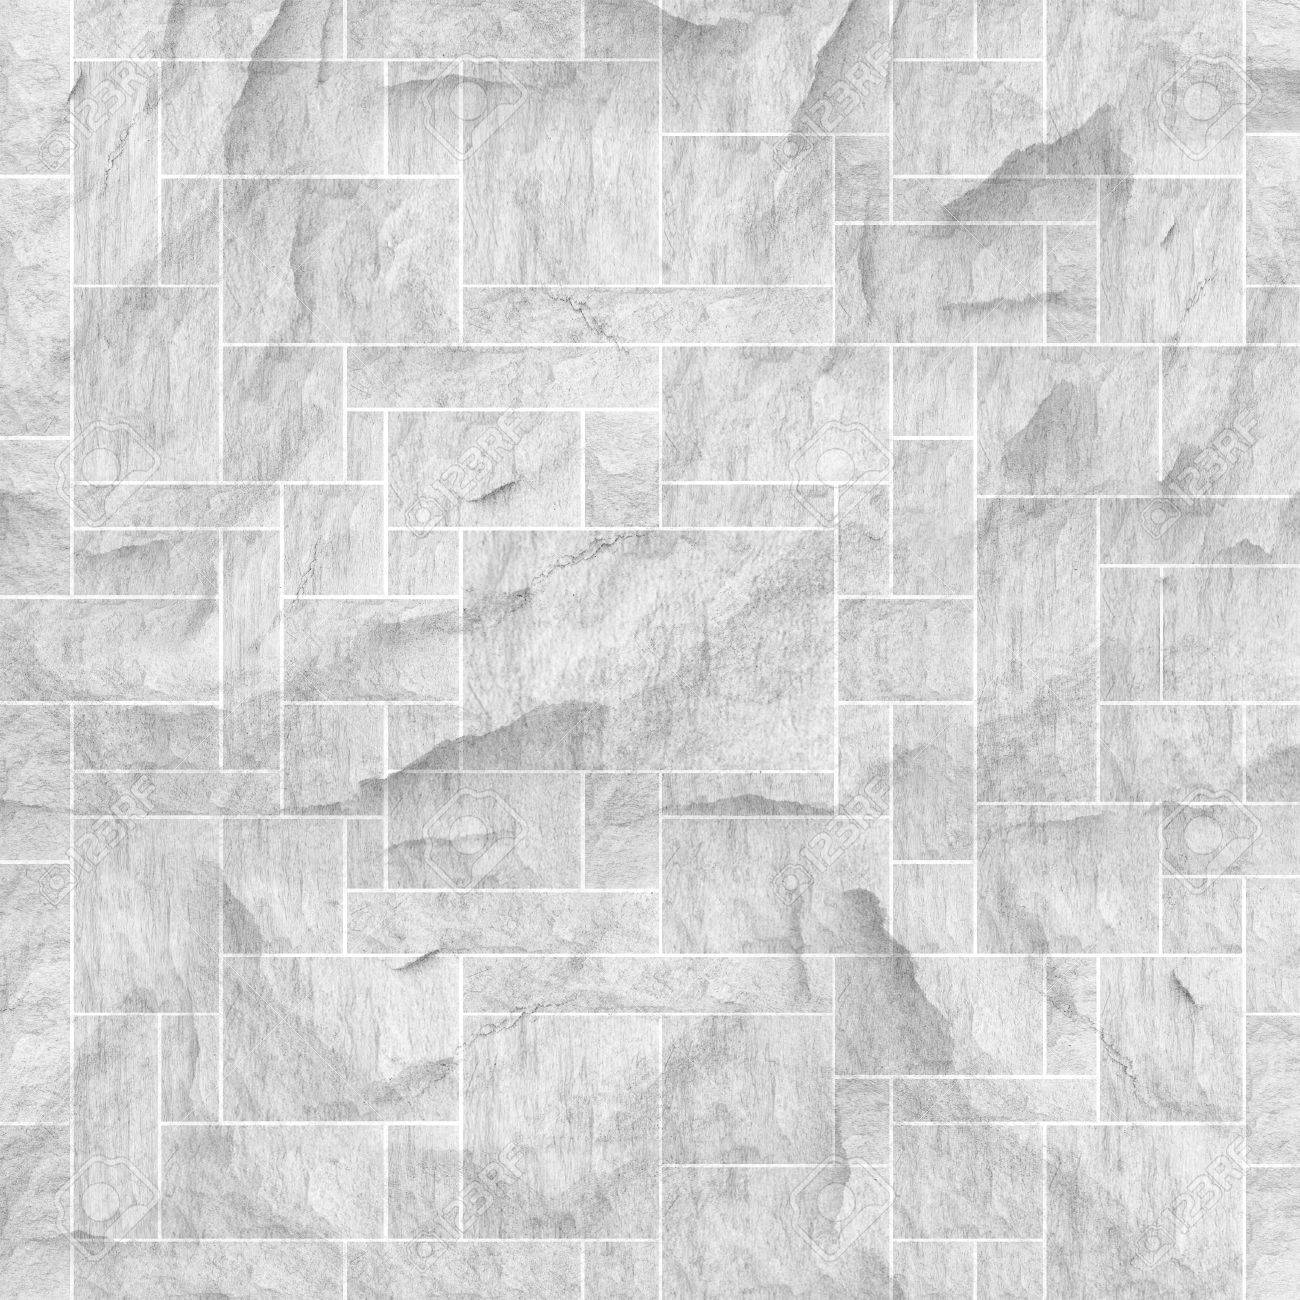 Pattern of Modern white wall surface and texture. white wall,stone texture for background - 58181112